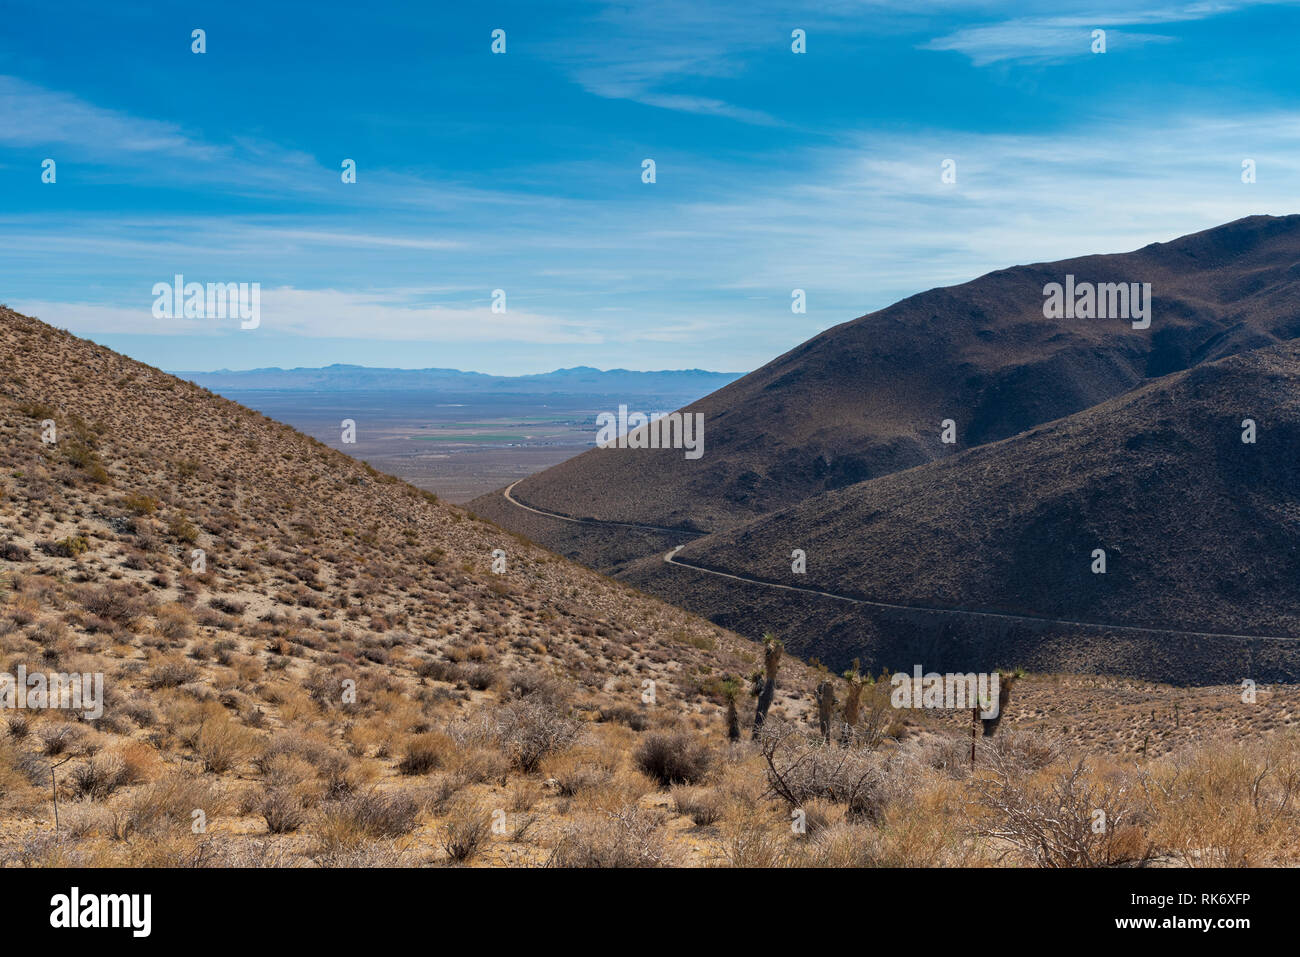 Looking down from mountain top at mountain, hills and valley below under bright blue sky with white clouds. Golden brown mountainside, desert brush. - Stock Image